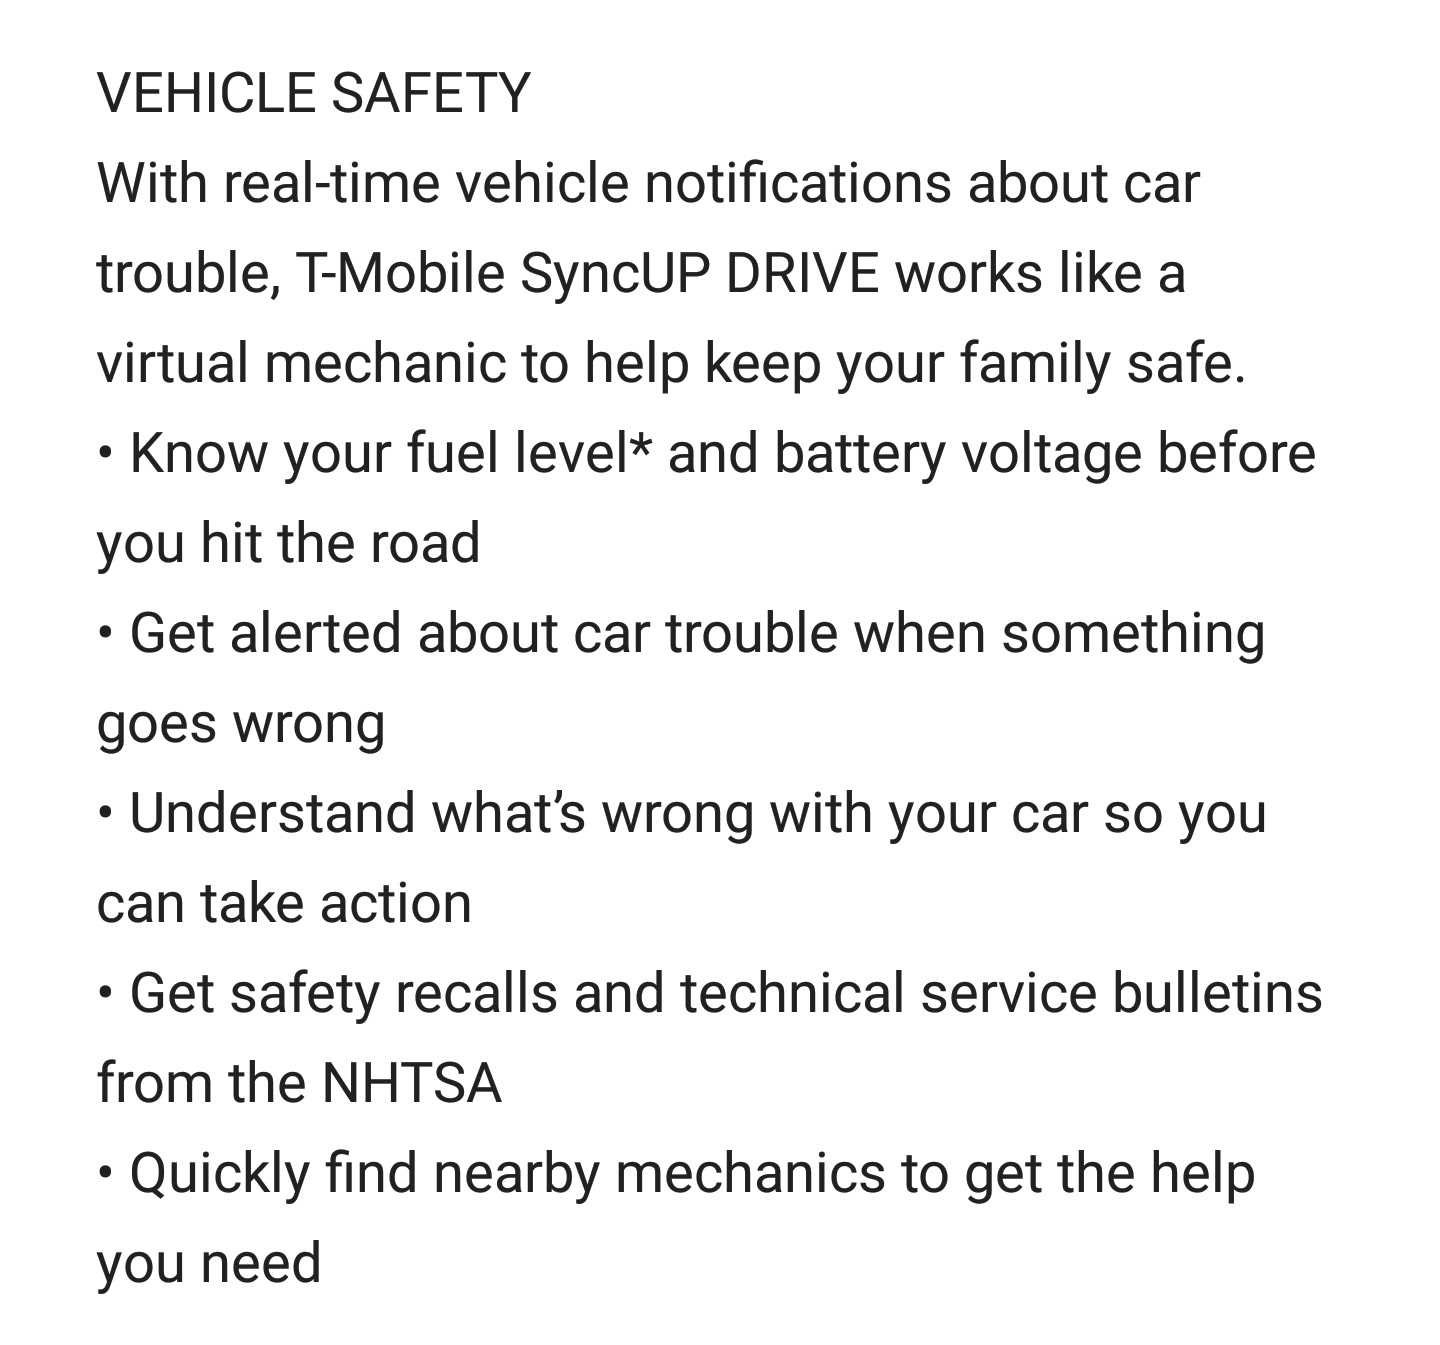 Vehicle Safety.jpg